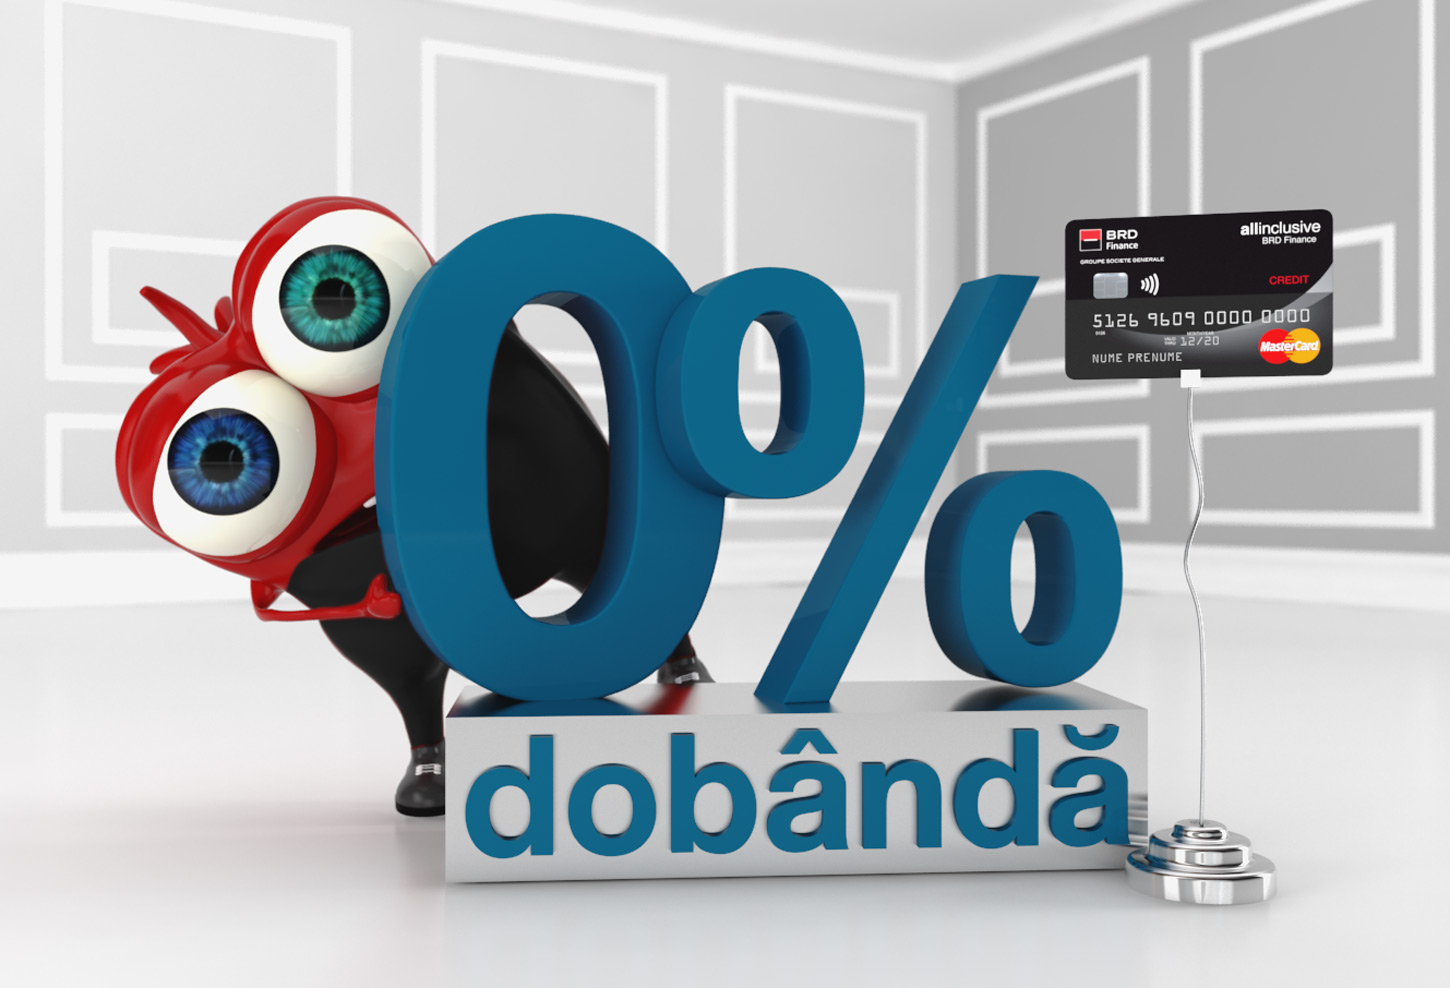 3D-toon-character-modeling-poster-design-banking-0-interest-rate-ad-3DArtStudio